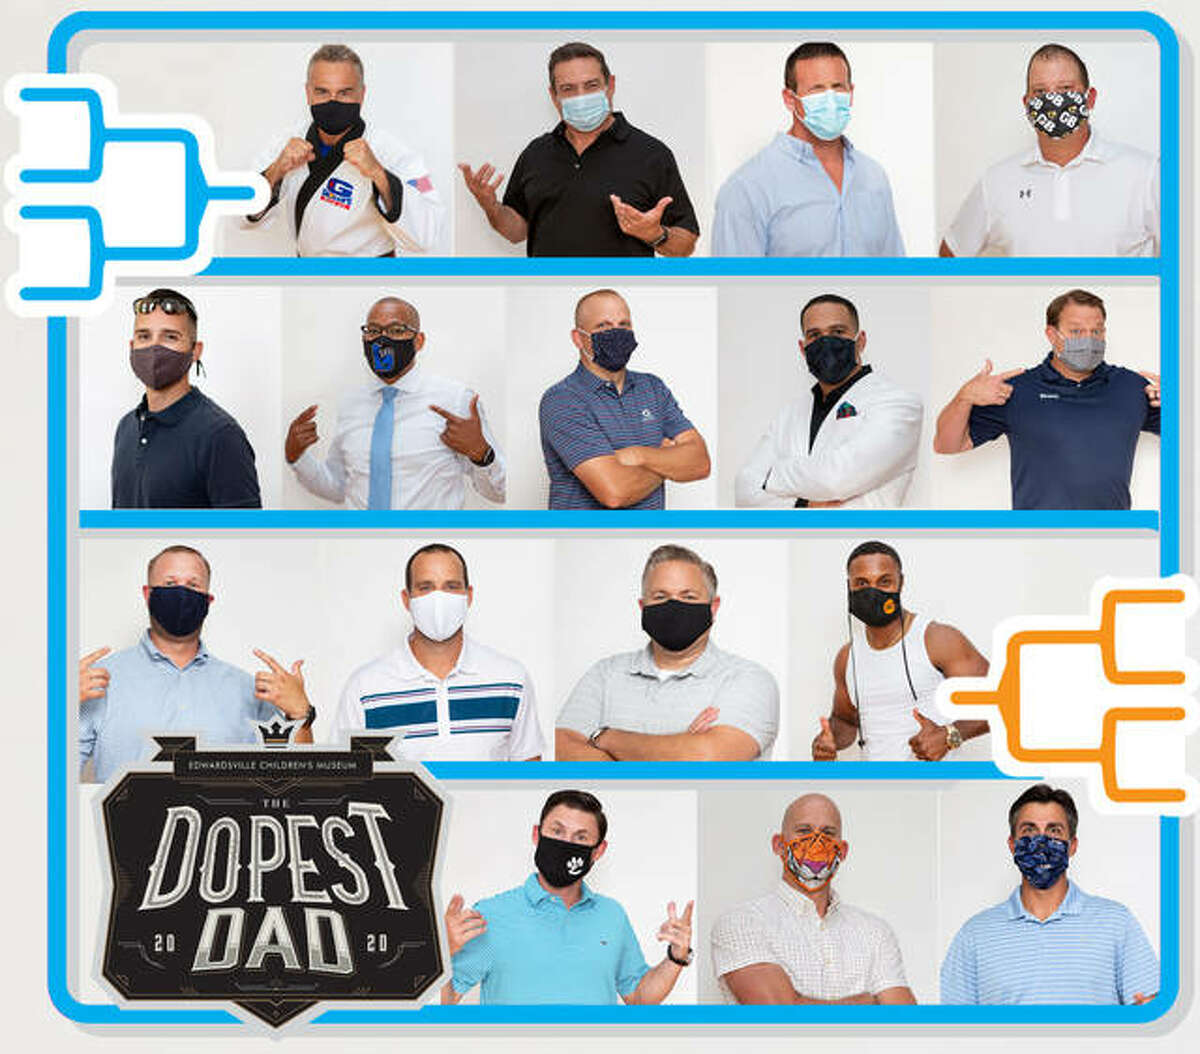 The Dopest Dad competition consists of 16 dads partnered up with their own local business sponsor.